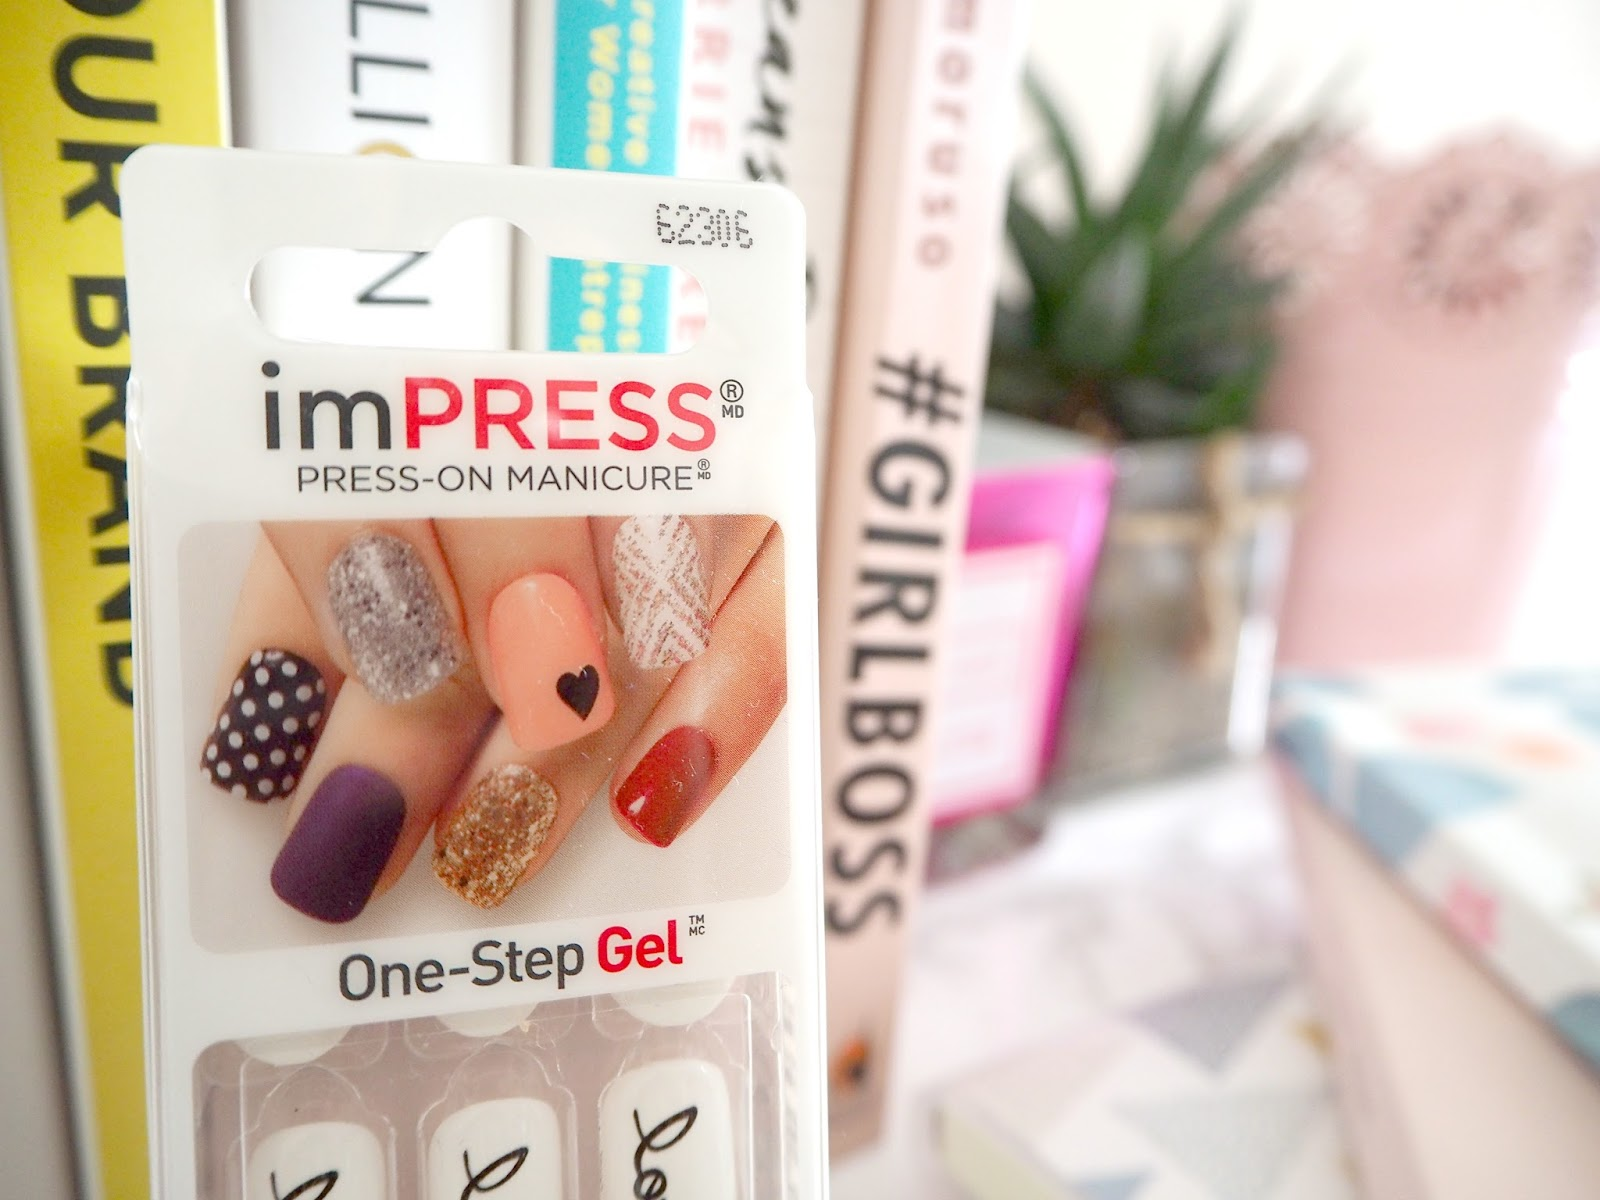 THE PERFECT NAILS FOR BUSY BEES | IMPRESS GEL NAILS | Love, Maisie | www.lovemaisie.com